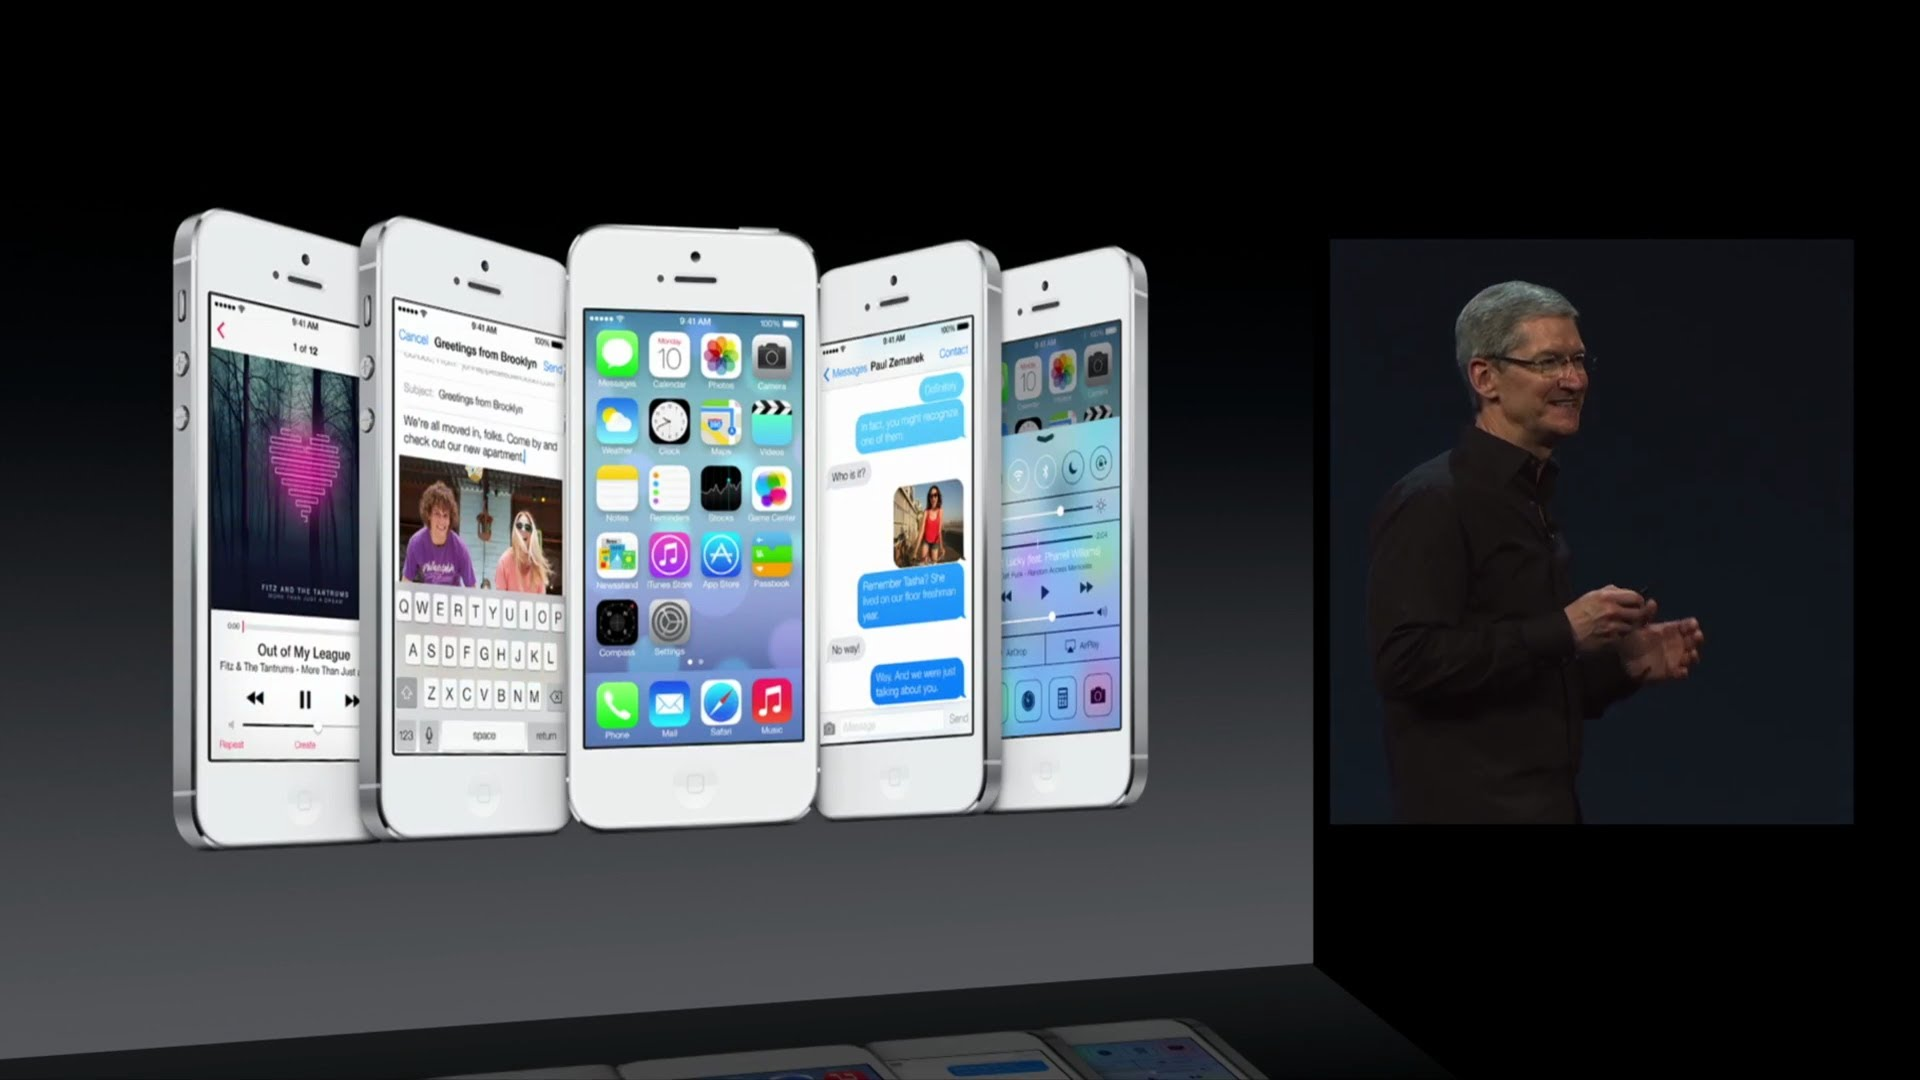 Apple Keynote Ios 7 Os X Mavericks Mac Pro Wwdc 2013